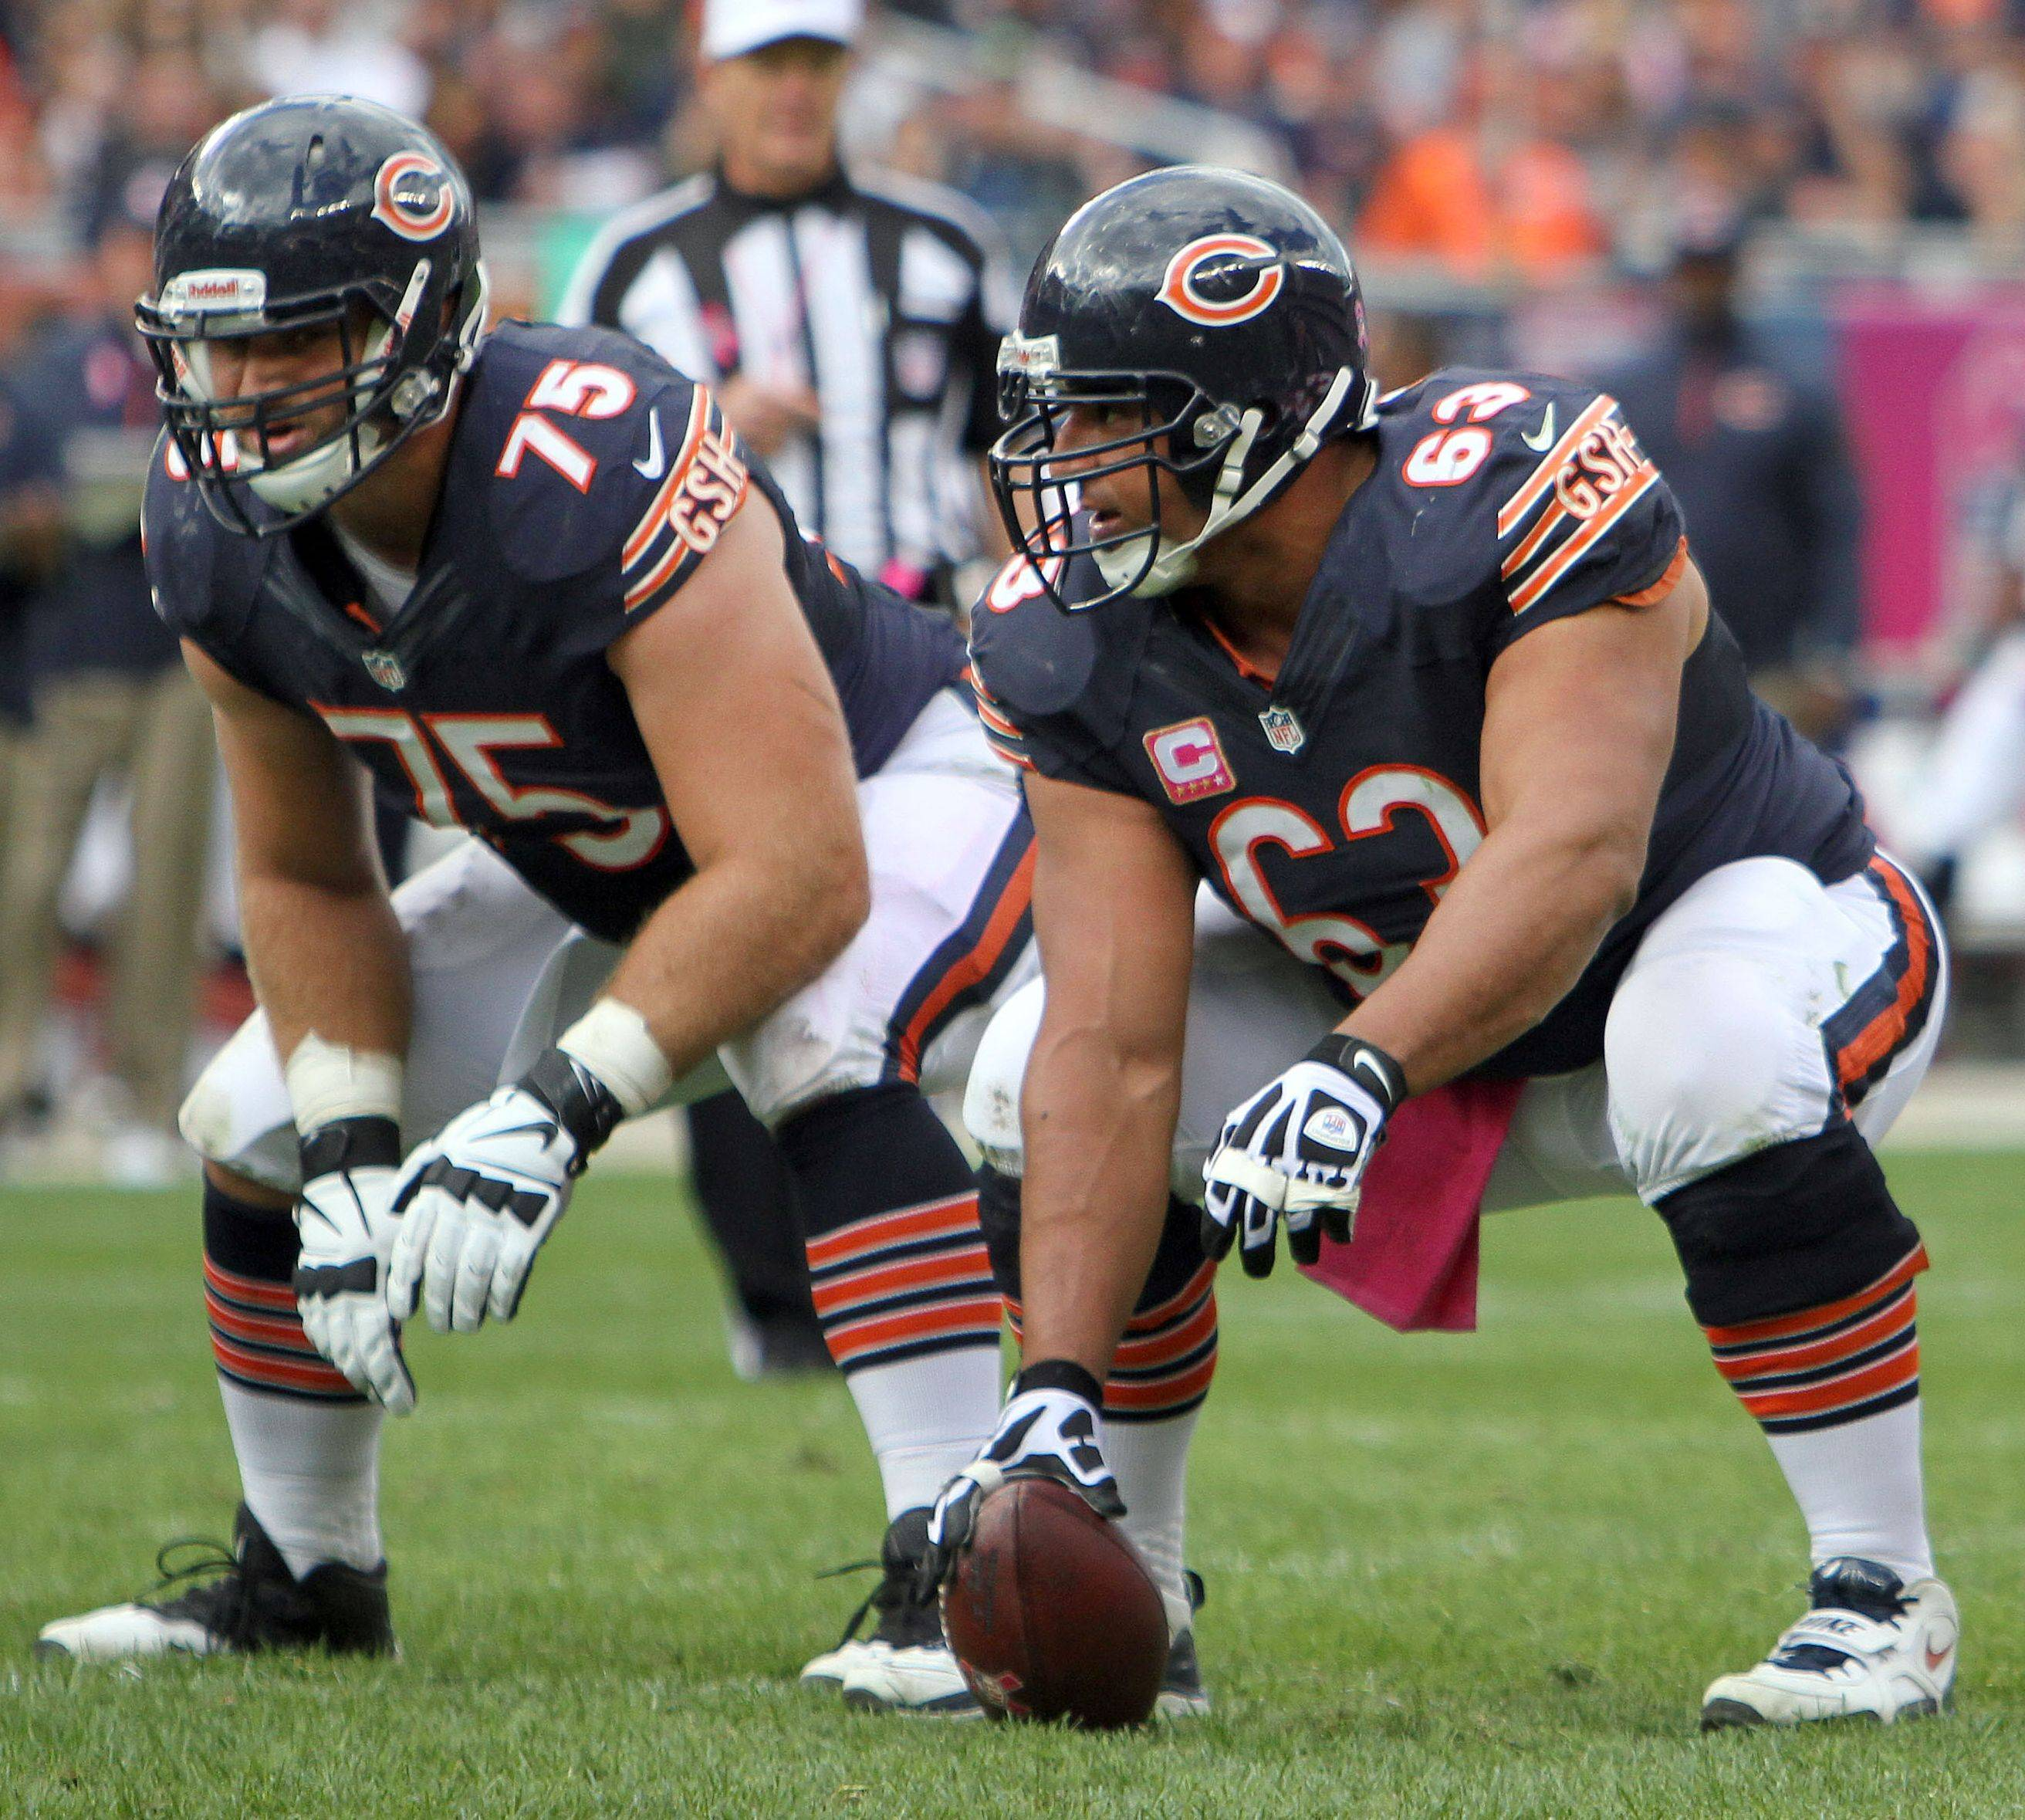 Bears center Roberto Garza (63) is the only remaining starter from last year's offensive line. Rookie guard Kyle Long (75), rookie tackle Jordan Mills and free agents Jermon Bushrod and Matt Slausen have teamed with Garza to turn around a unit that struggled to keep pass rushers away from Jay Cutler in past years.